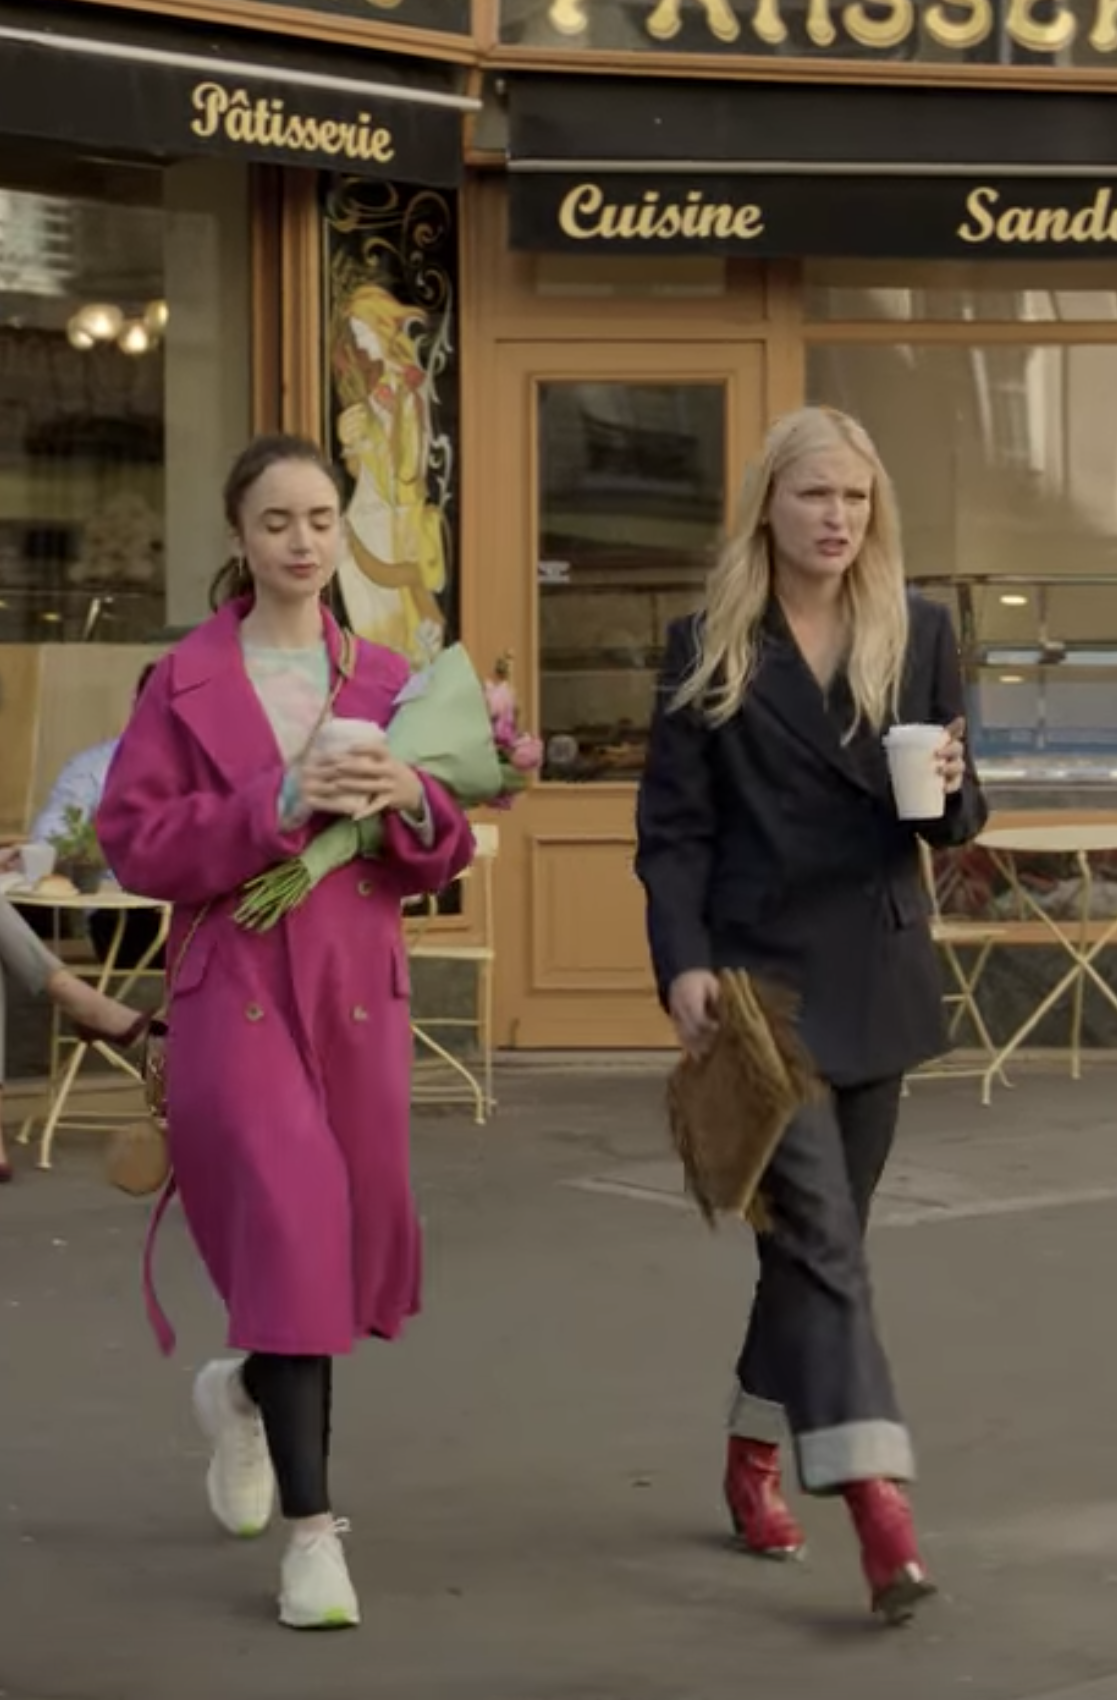 Emily and Camille walk out of a patisserie; Emily wears sneakers, black leggings, a pastel sweater, and a large pink coat